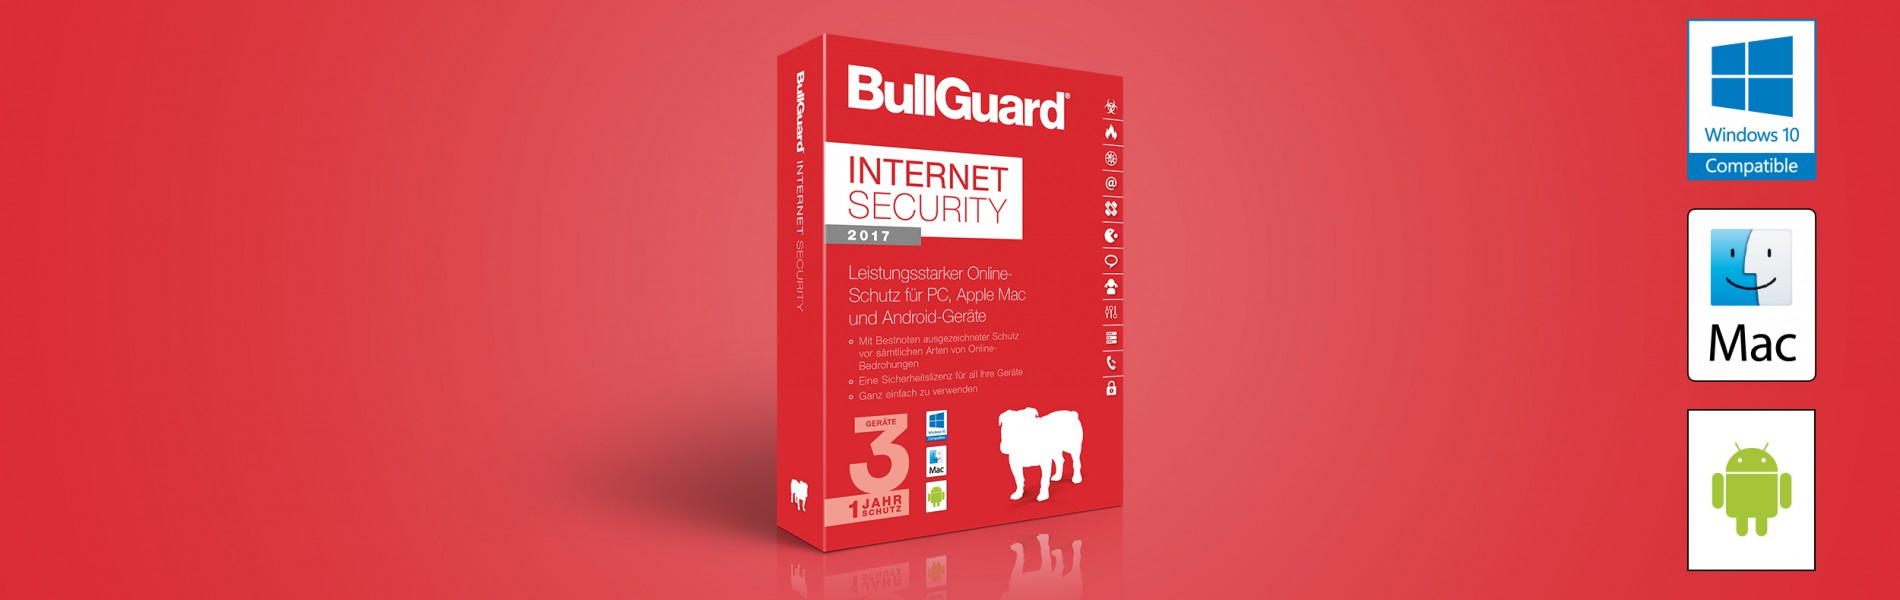 BullGuard Internet Security 2017 (für PC, Mac und Android)